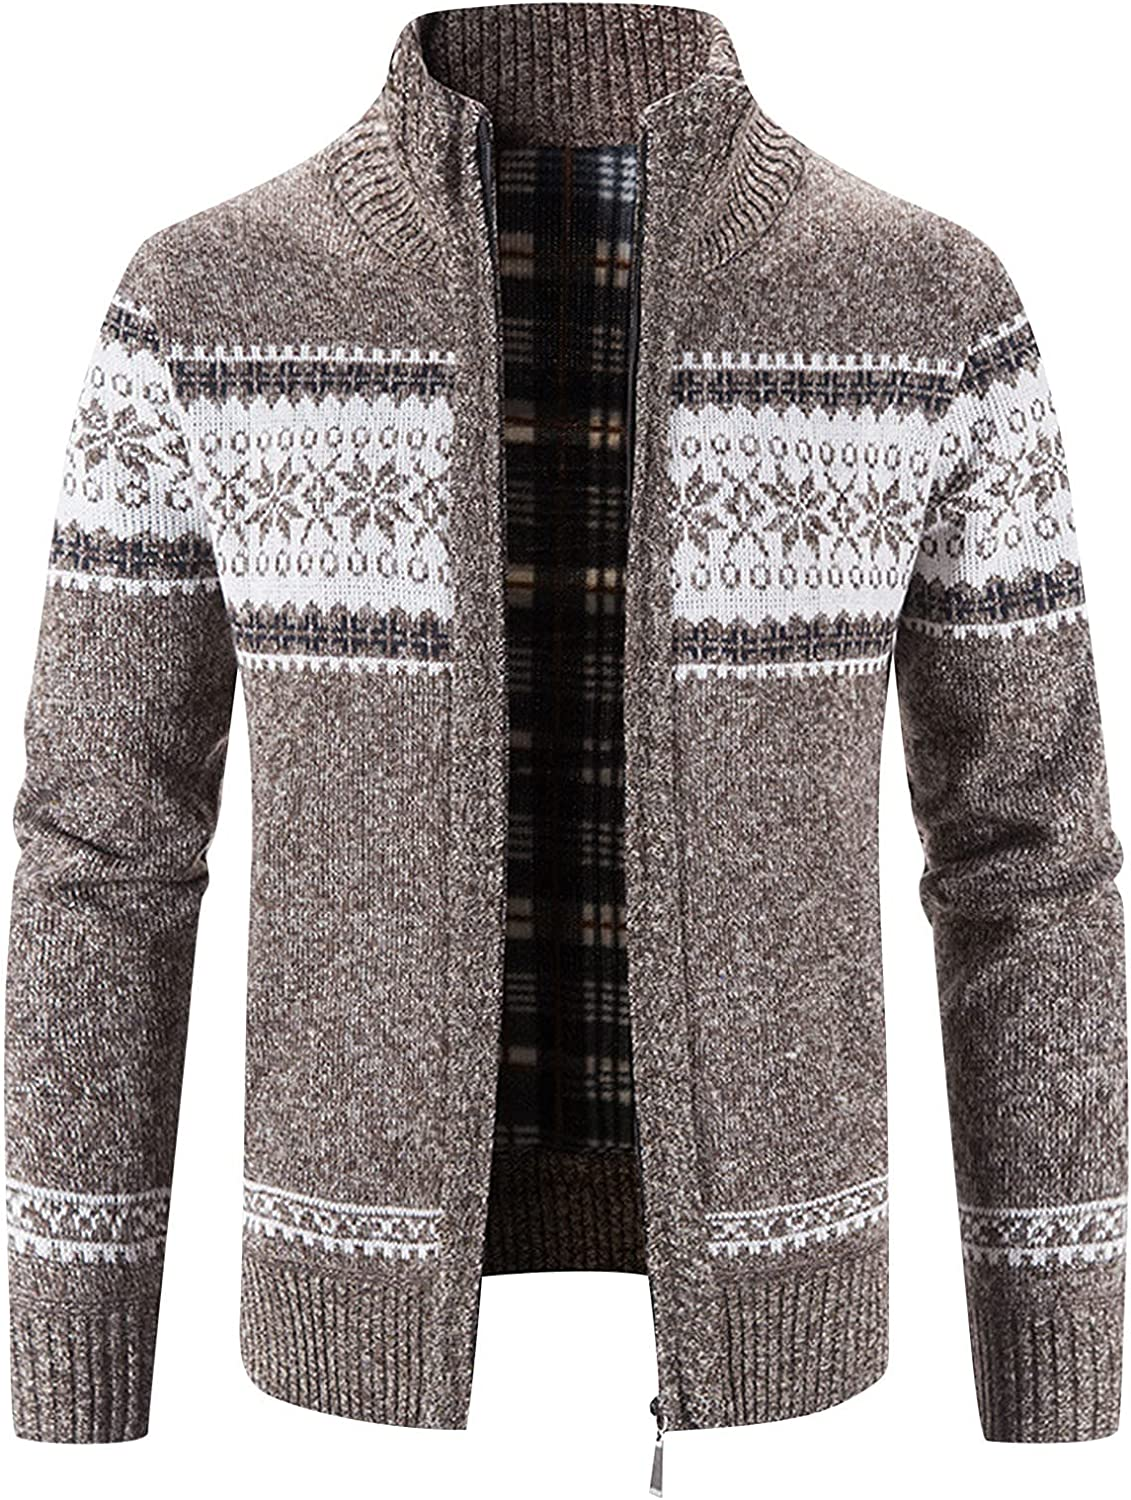 Mens Zip Max Raleigh Mall 53% OFF Cardigan Sweater Block Warm Cardig Printed Collar Stand